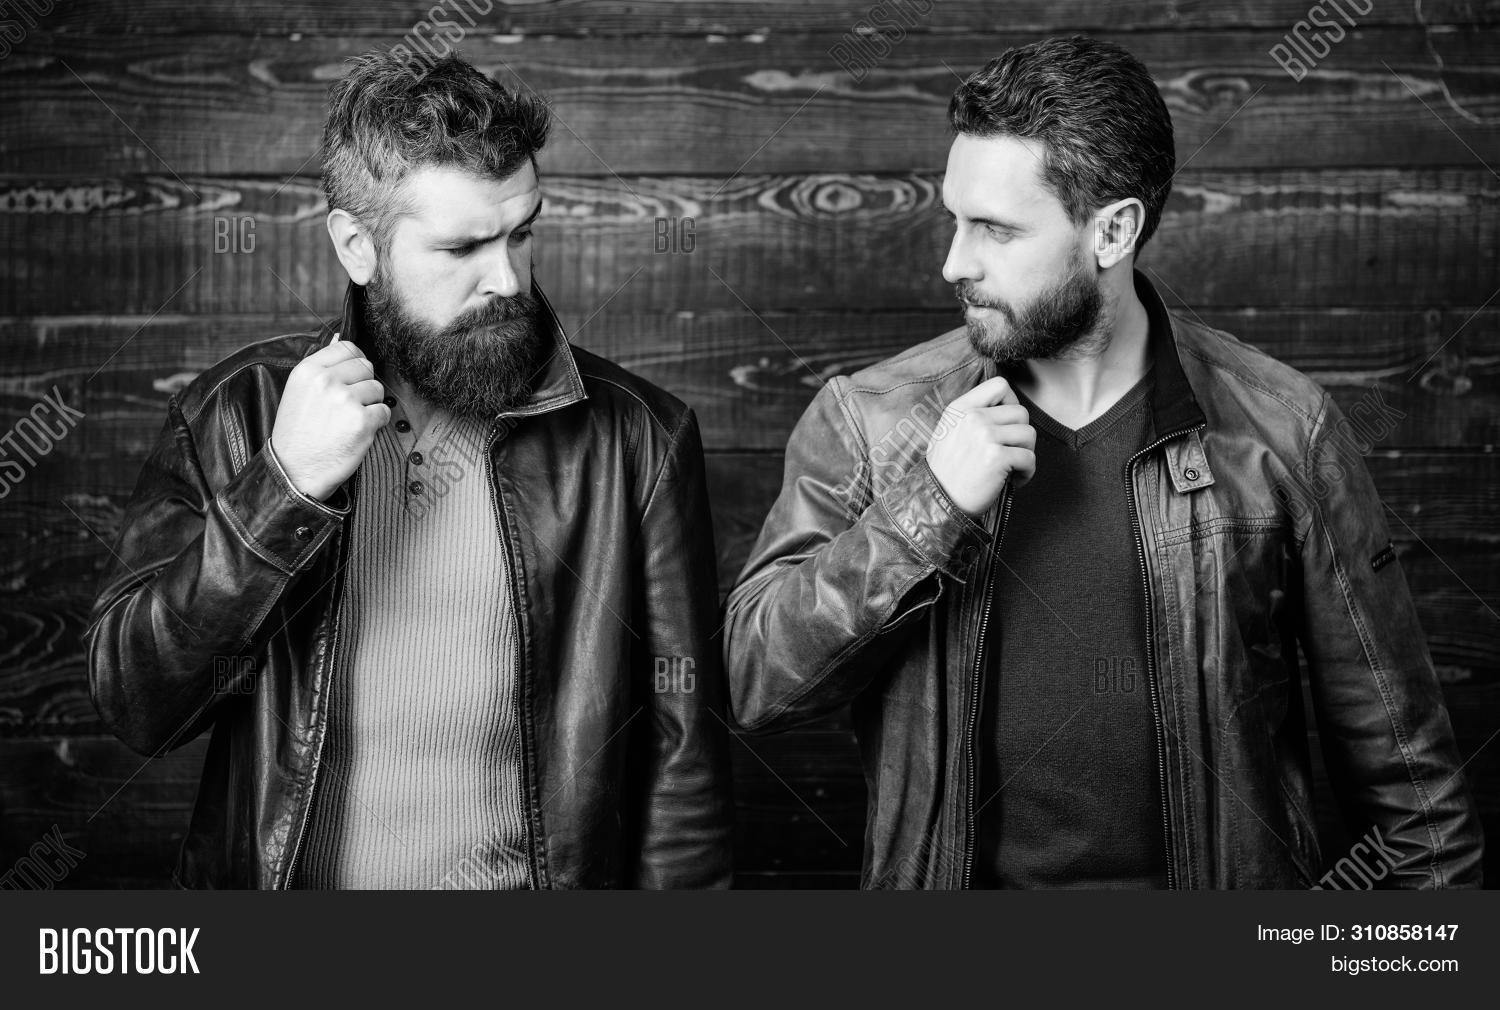 Men Brutal Bearded Hipster Posing In Fashionable Black Leather Jackets. Handsome Stylish And Cool. F